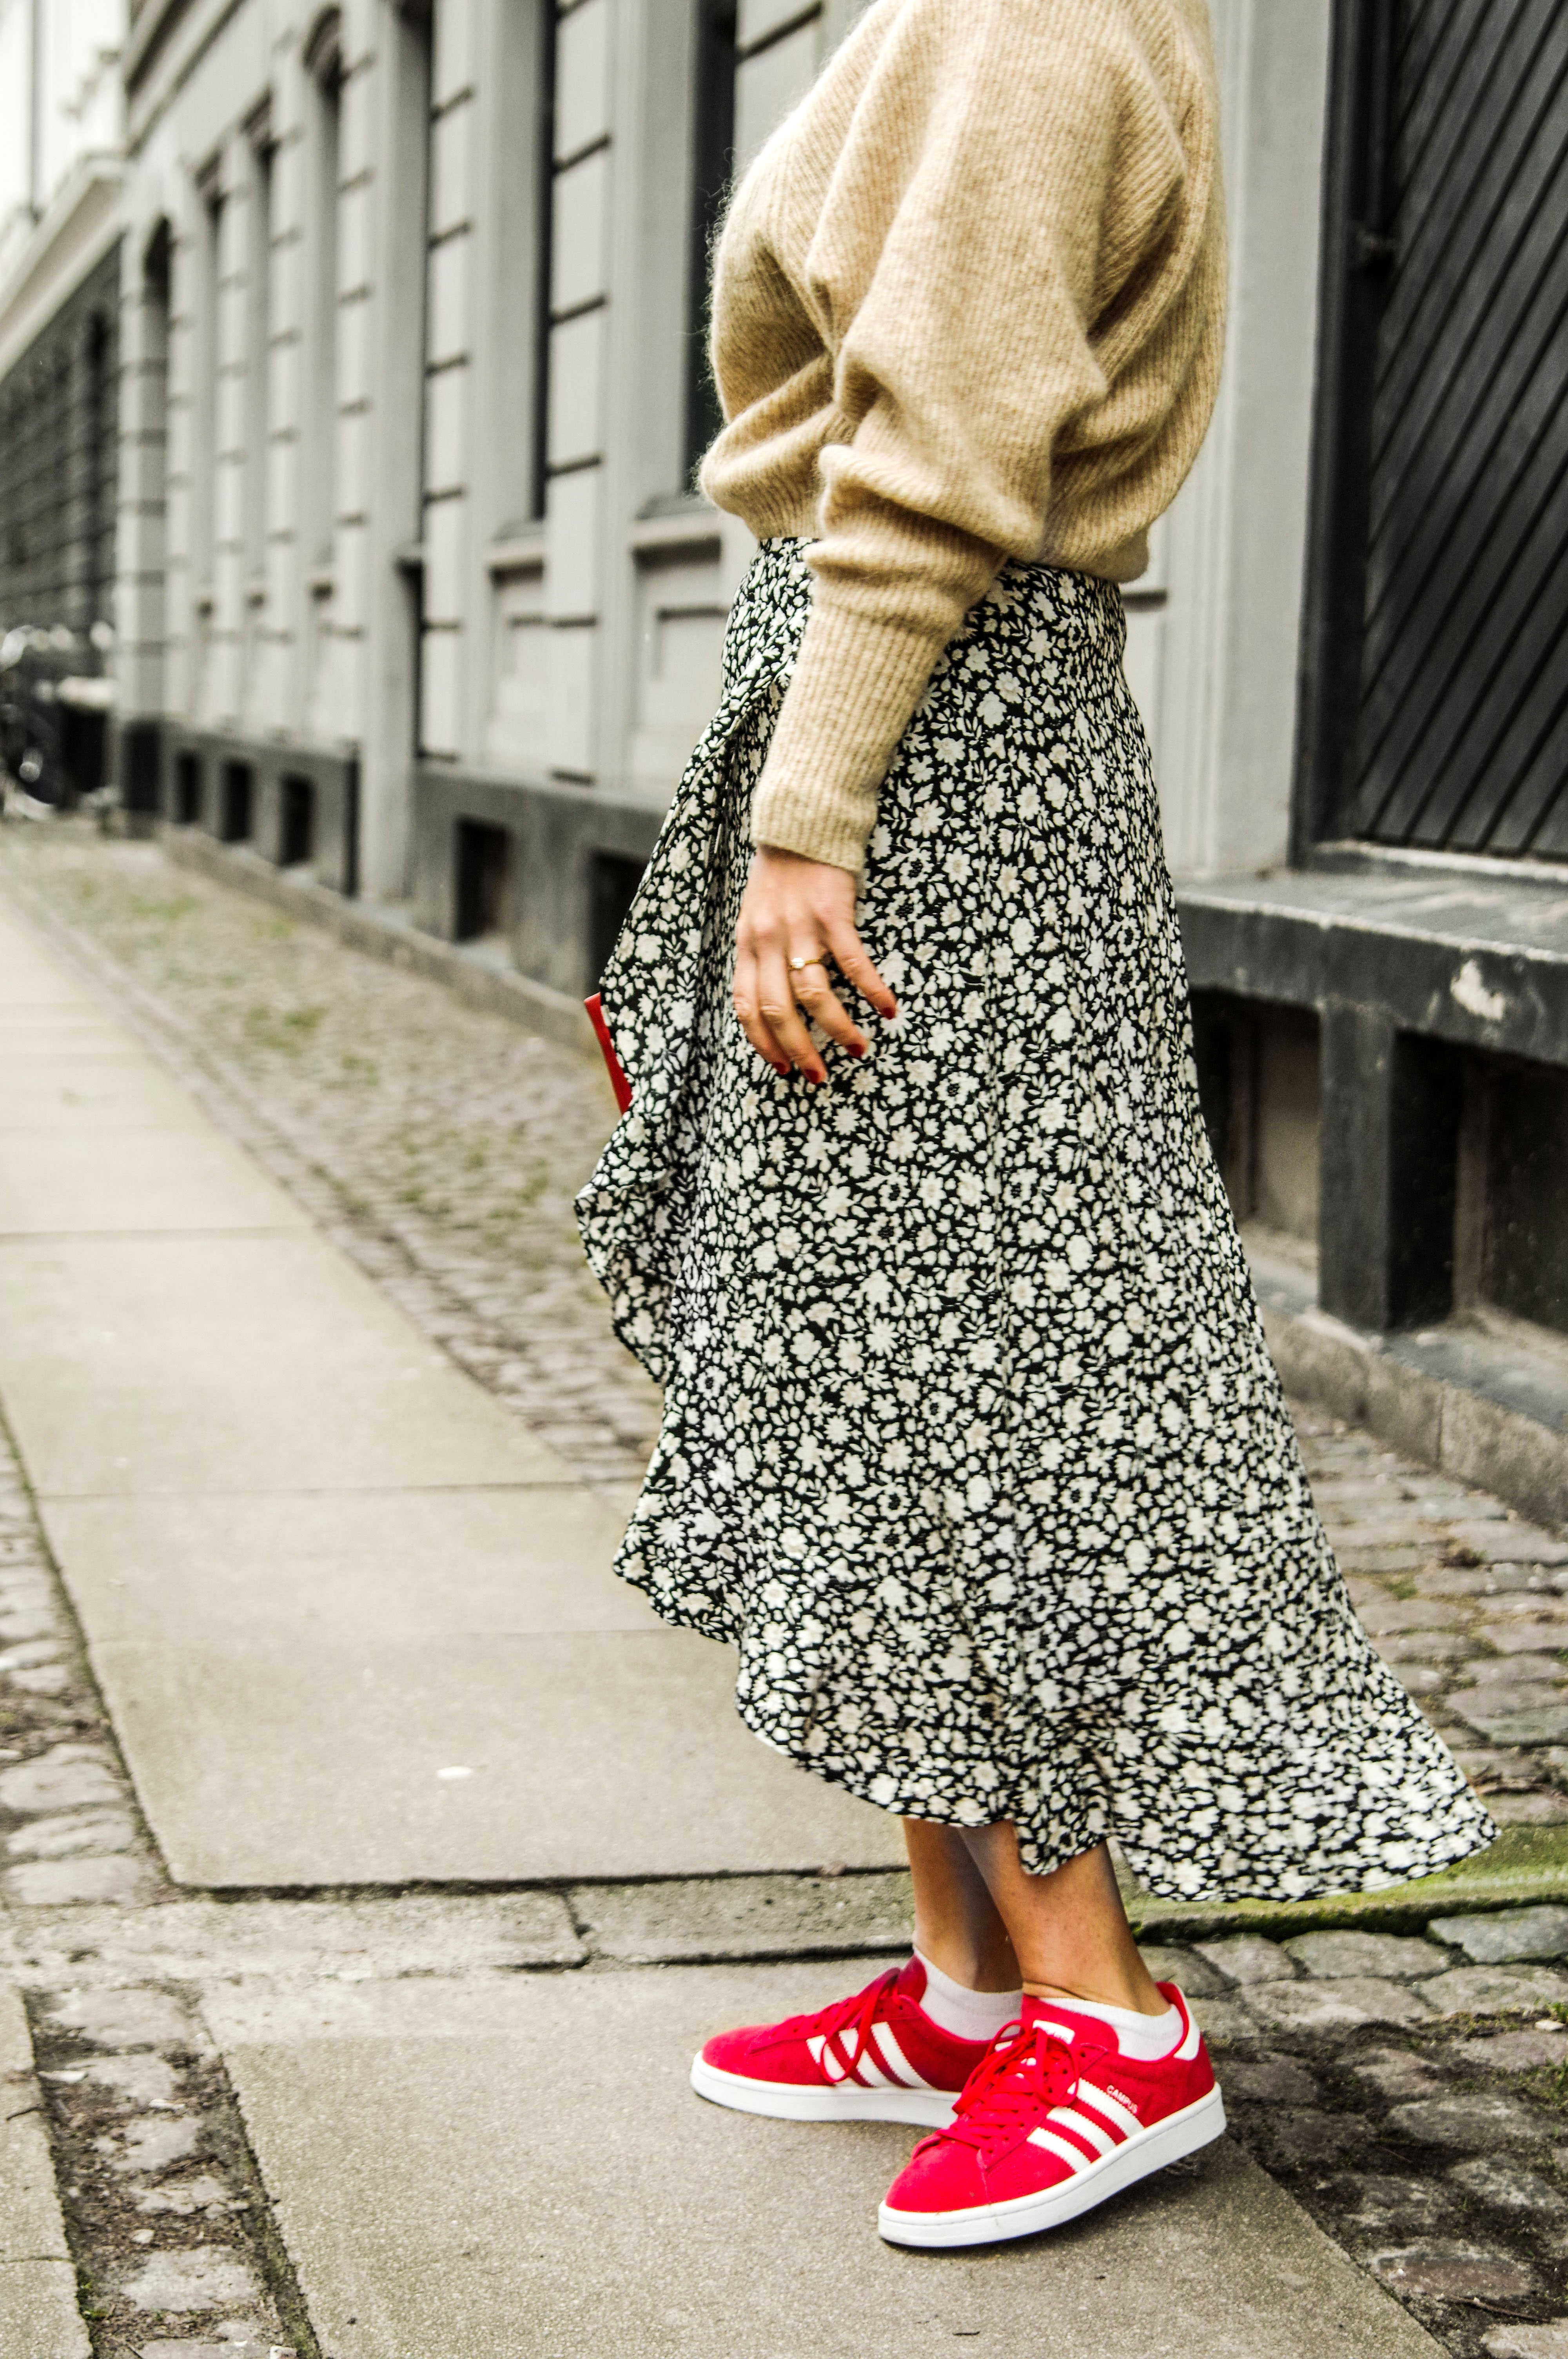 plead floral skirt scandinavian fashion, copenhagen streetstyle, how scandinavia changed my personal style 3